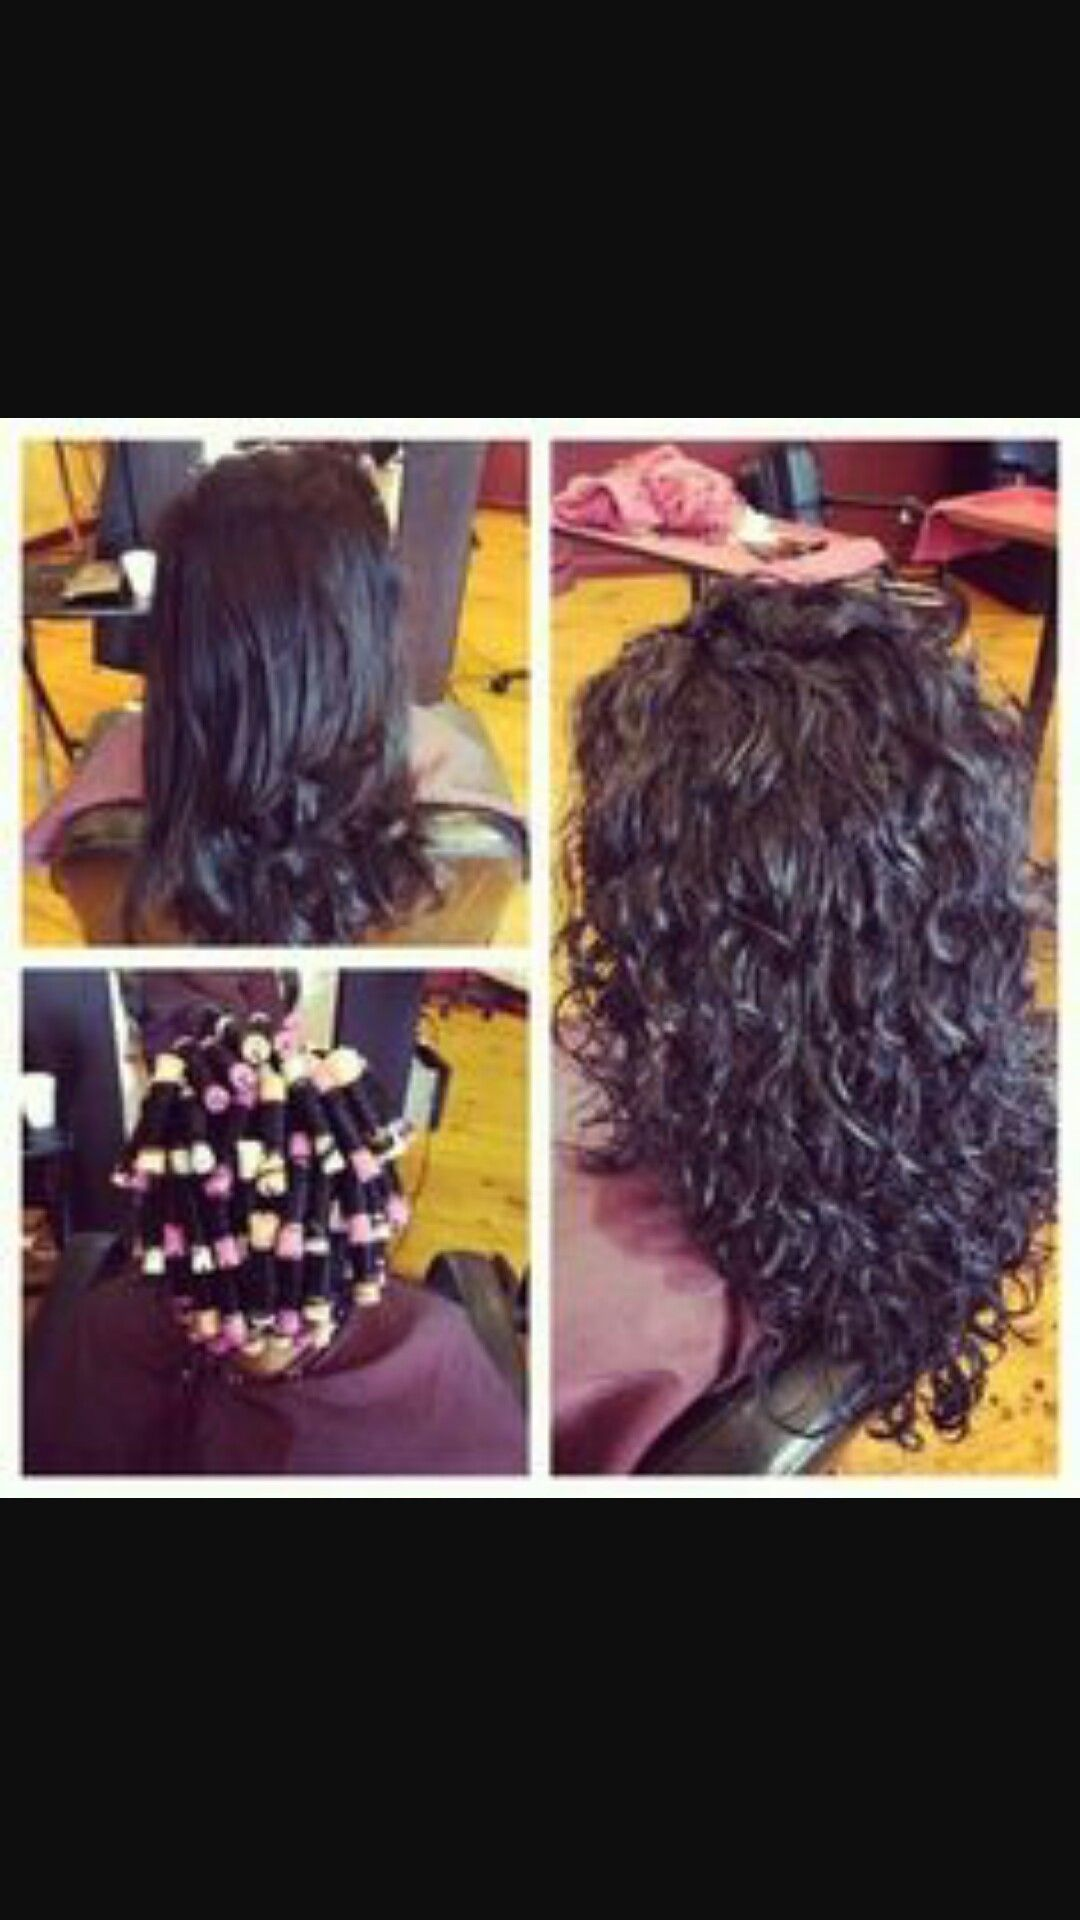 Straight perm yahoo answers - Loose Curl Perm Now If Mine Would Just Come Out Like This In Perms I D Be Ecstatic